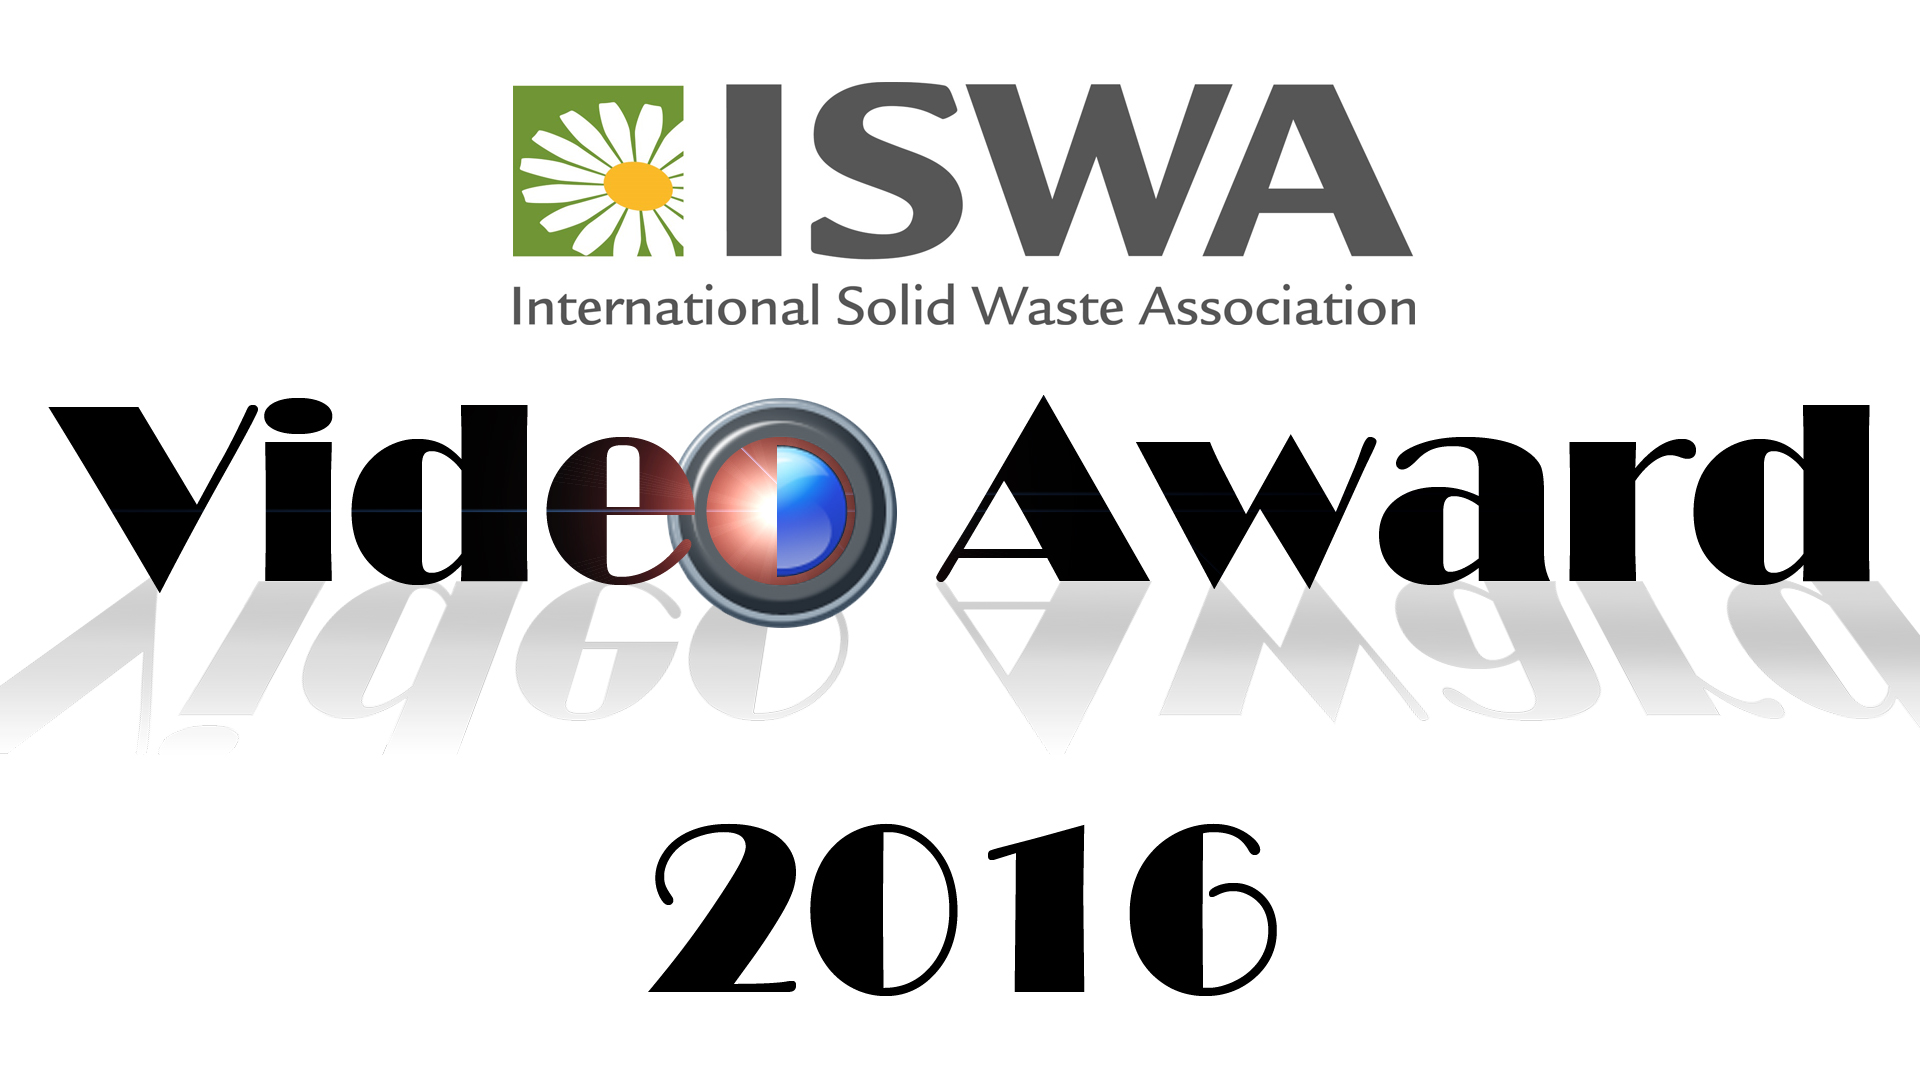 2016ISWA Video Award Insert 2016 02